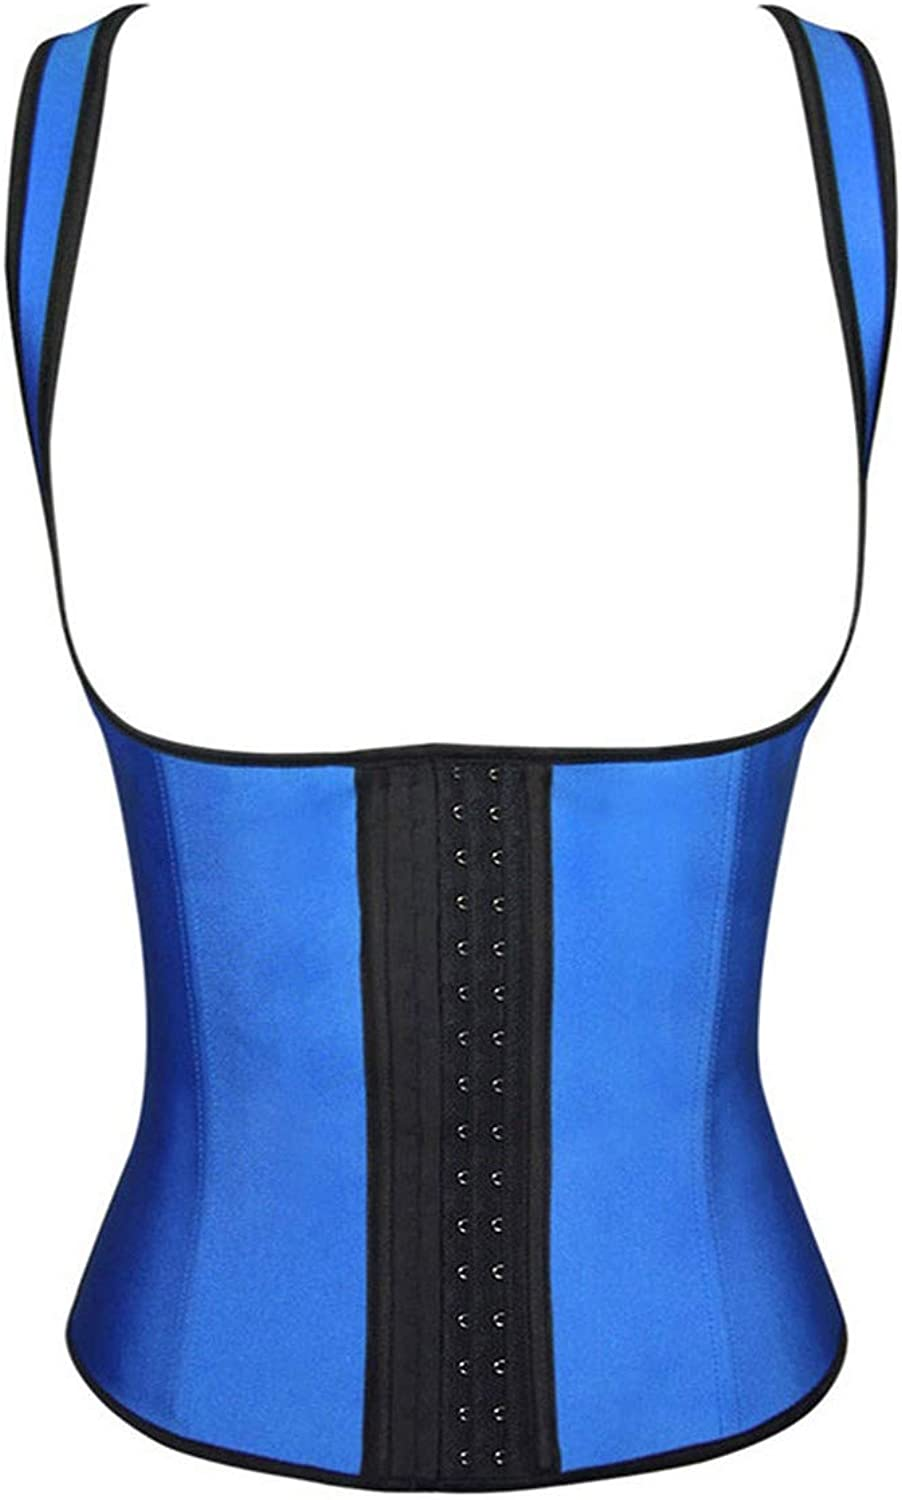 Fantastic Studio Latex Waist Trainer Waist Trainer Corset Latex Corselet Corsets and Bustiers Sports Suit